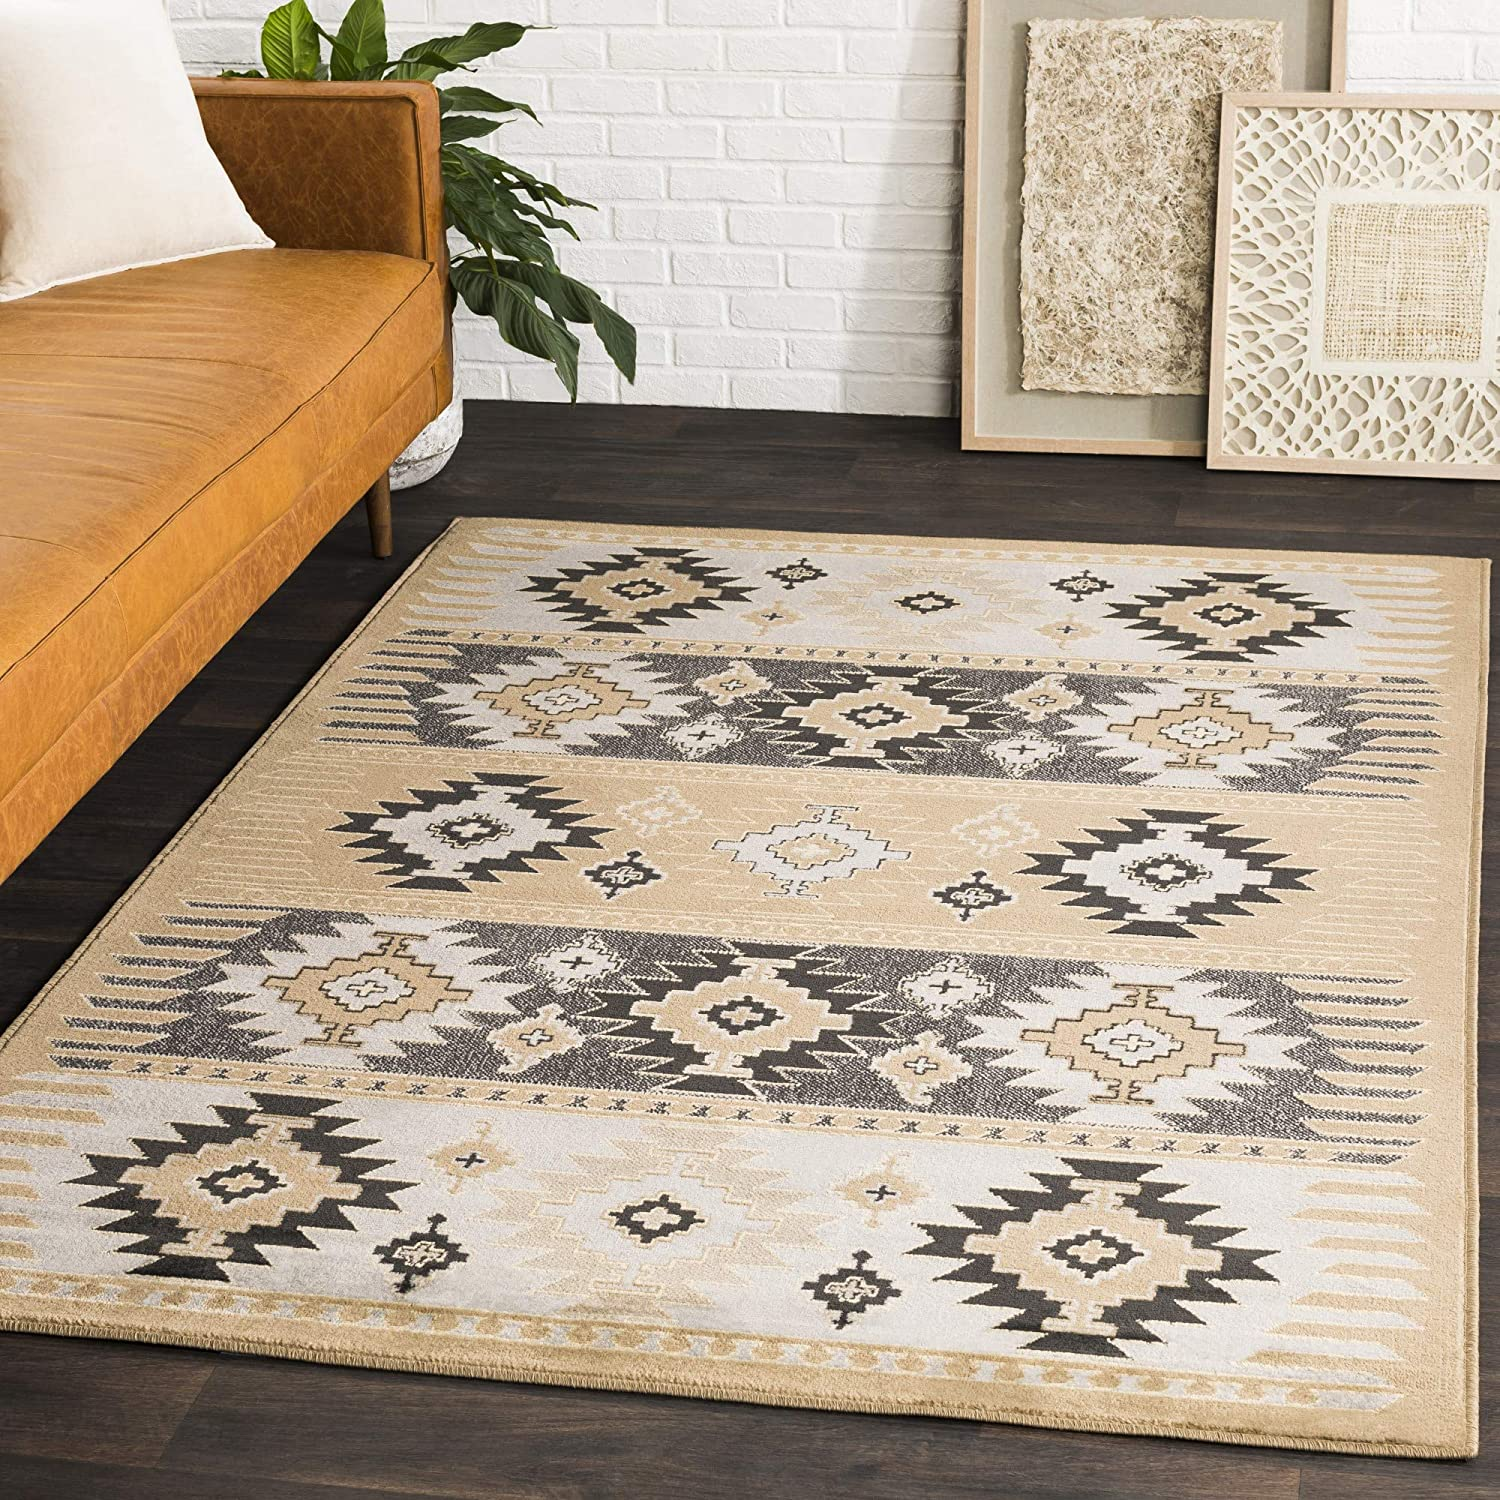 Hepburn favorite Camel Gray Our shop OFFers the best service and Black Transitional Rug Area 2' x 3'